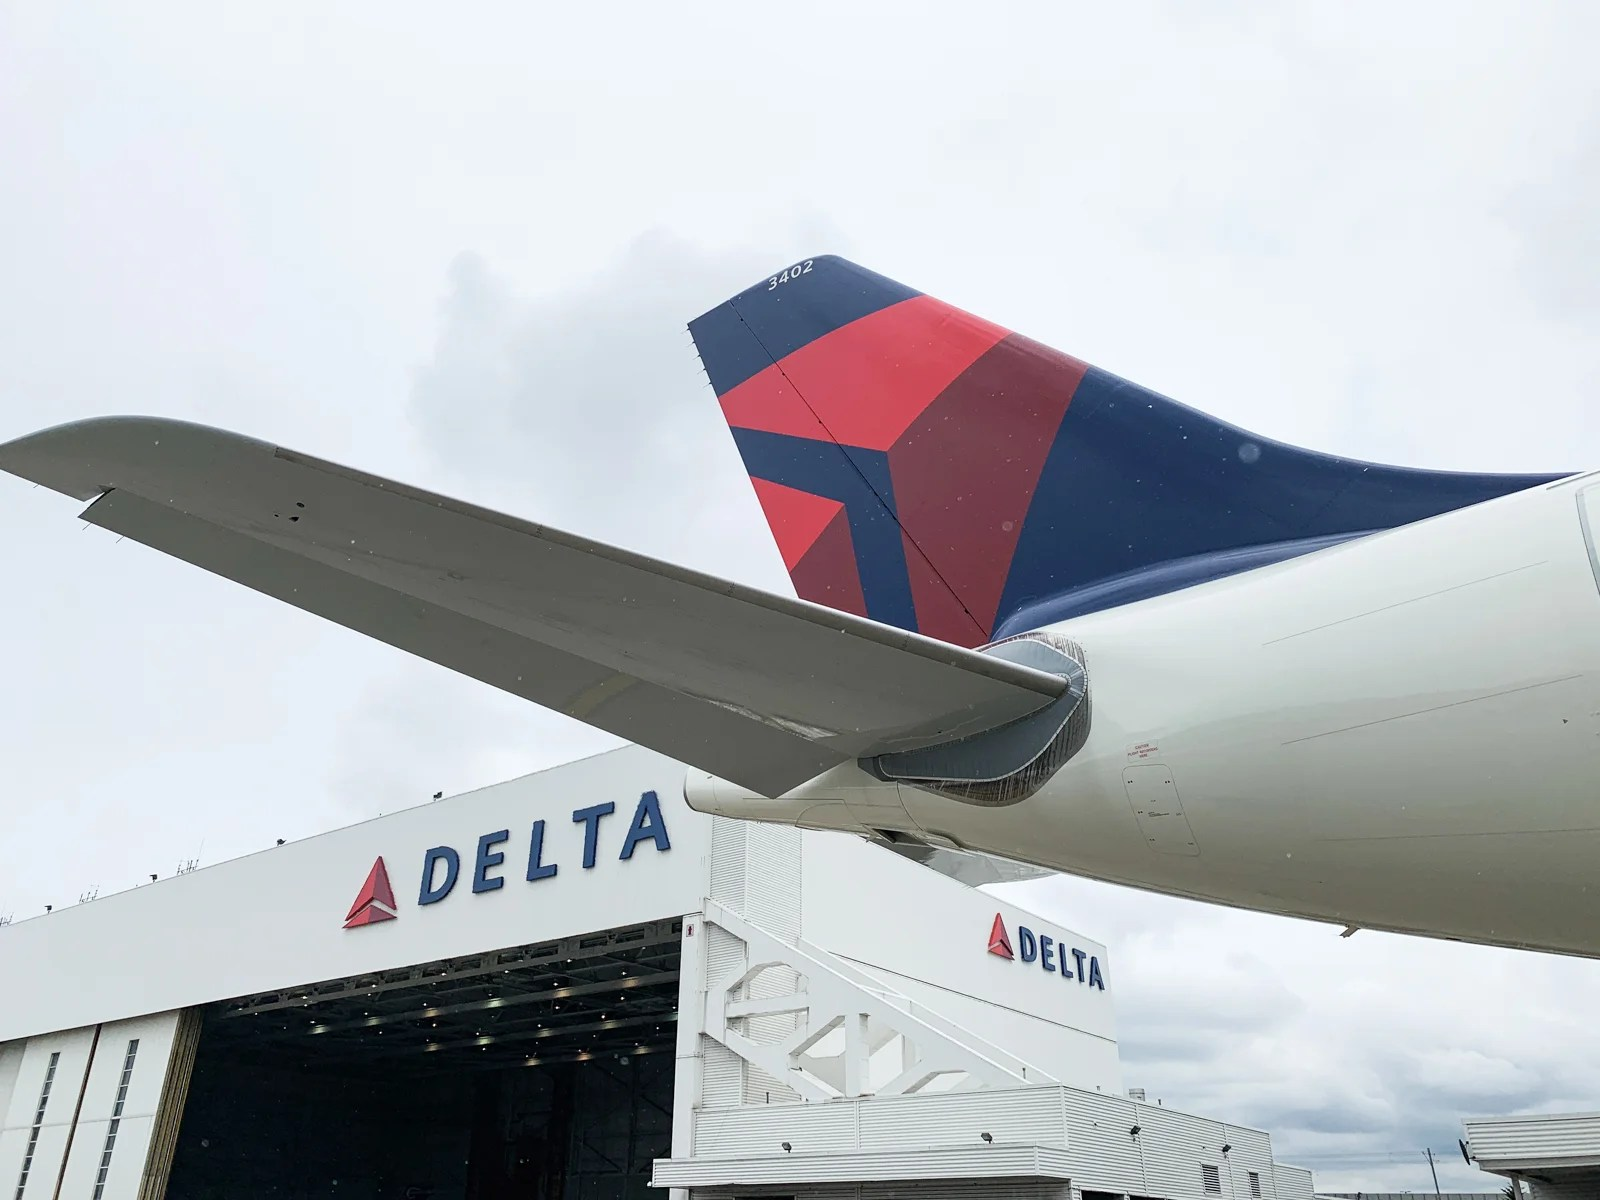 The reason Delta doesn't have free W-Fi yet? Tech limits, CEO says